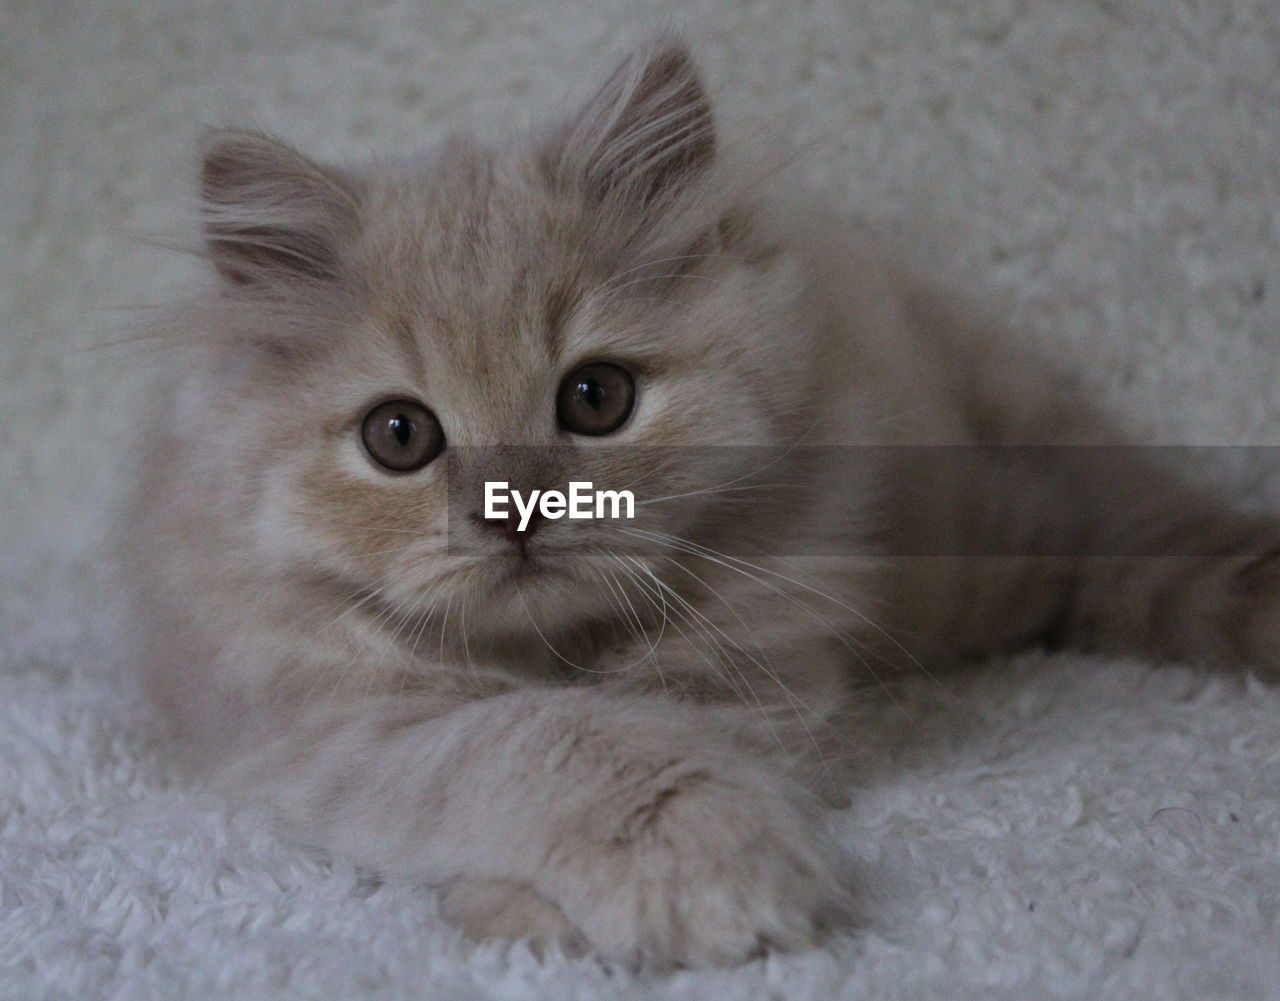 cat, domestic, pets, mammal, domestic cat, feline, animal themes, animal, domestic animals, one animal, vertebrate, looking at camera, portrait, indoors, relaxation, no people, whisker, close-up, home interior, lying down, persian cat